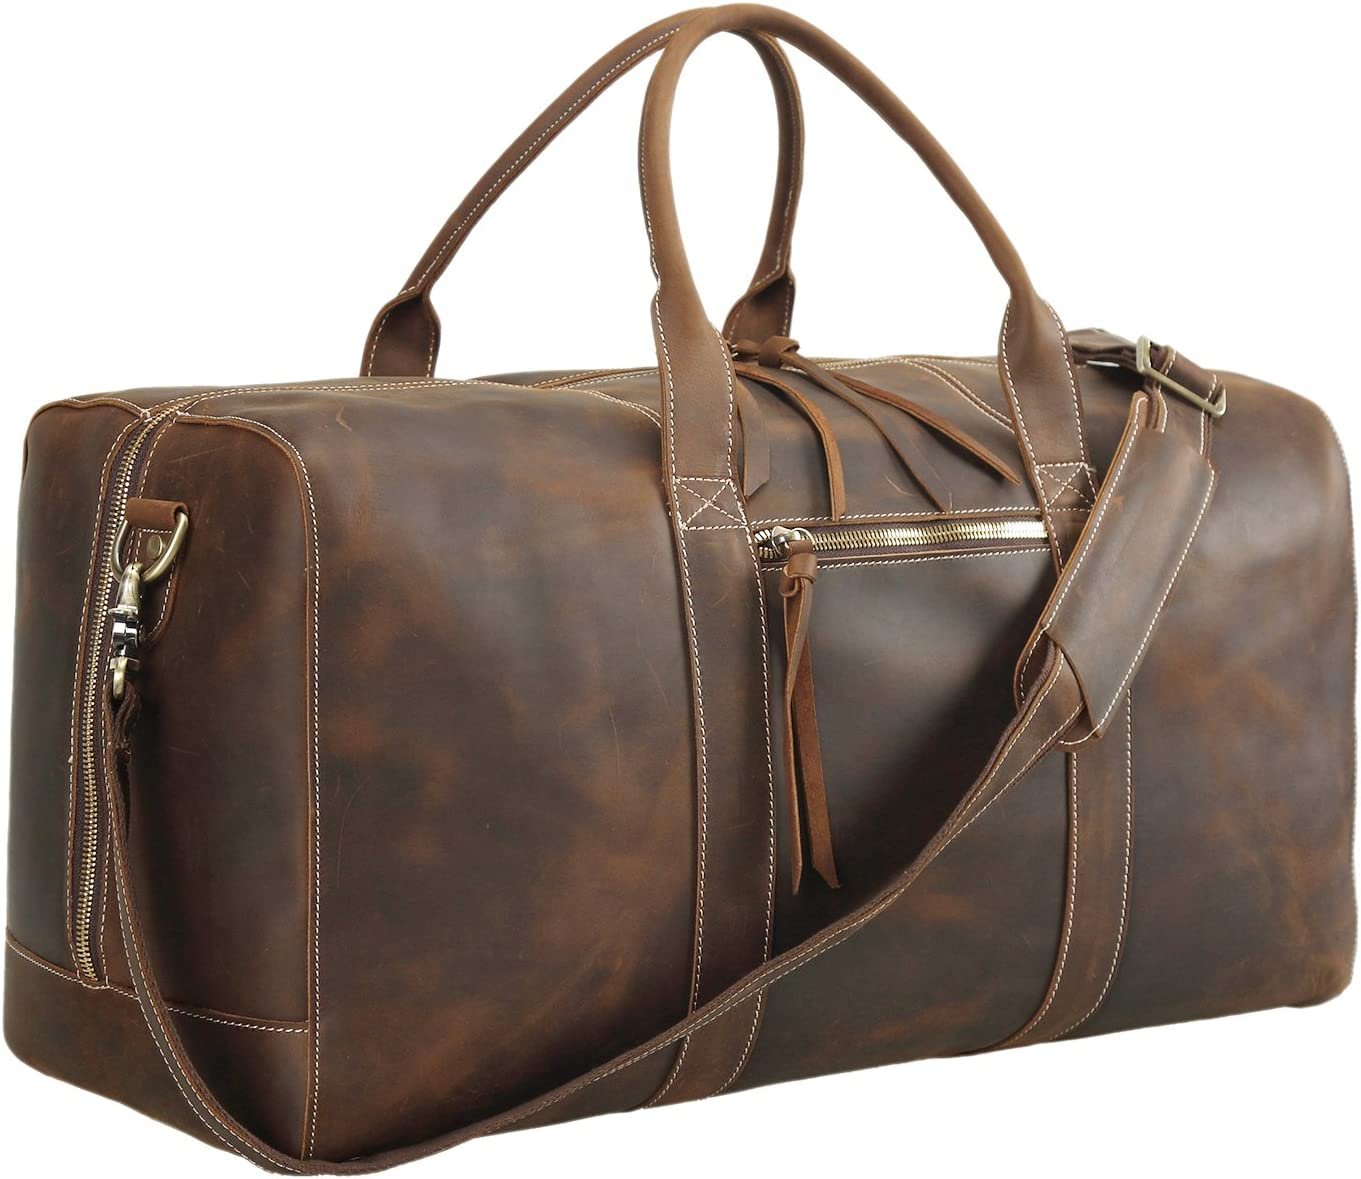 Tiding Leather Travel Duffel Bag 22 Large Retro Gym Weekender Overnight Hand Luggage Bag For Men